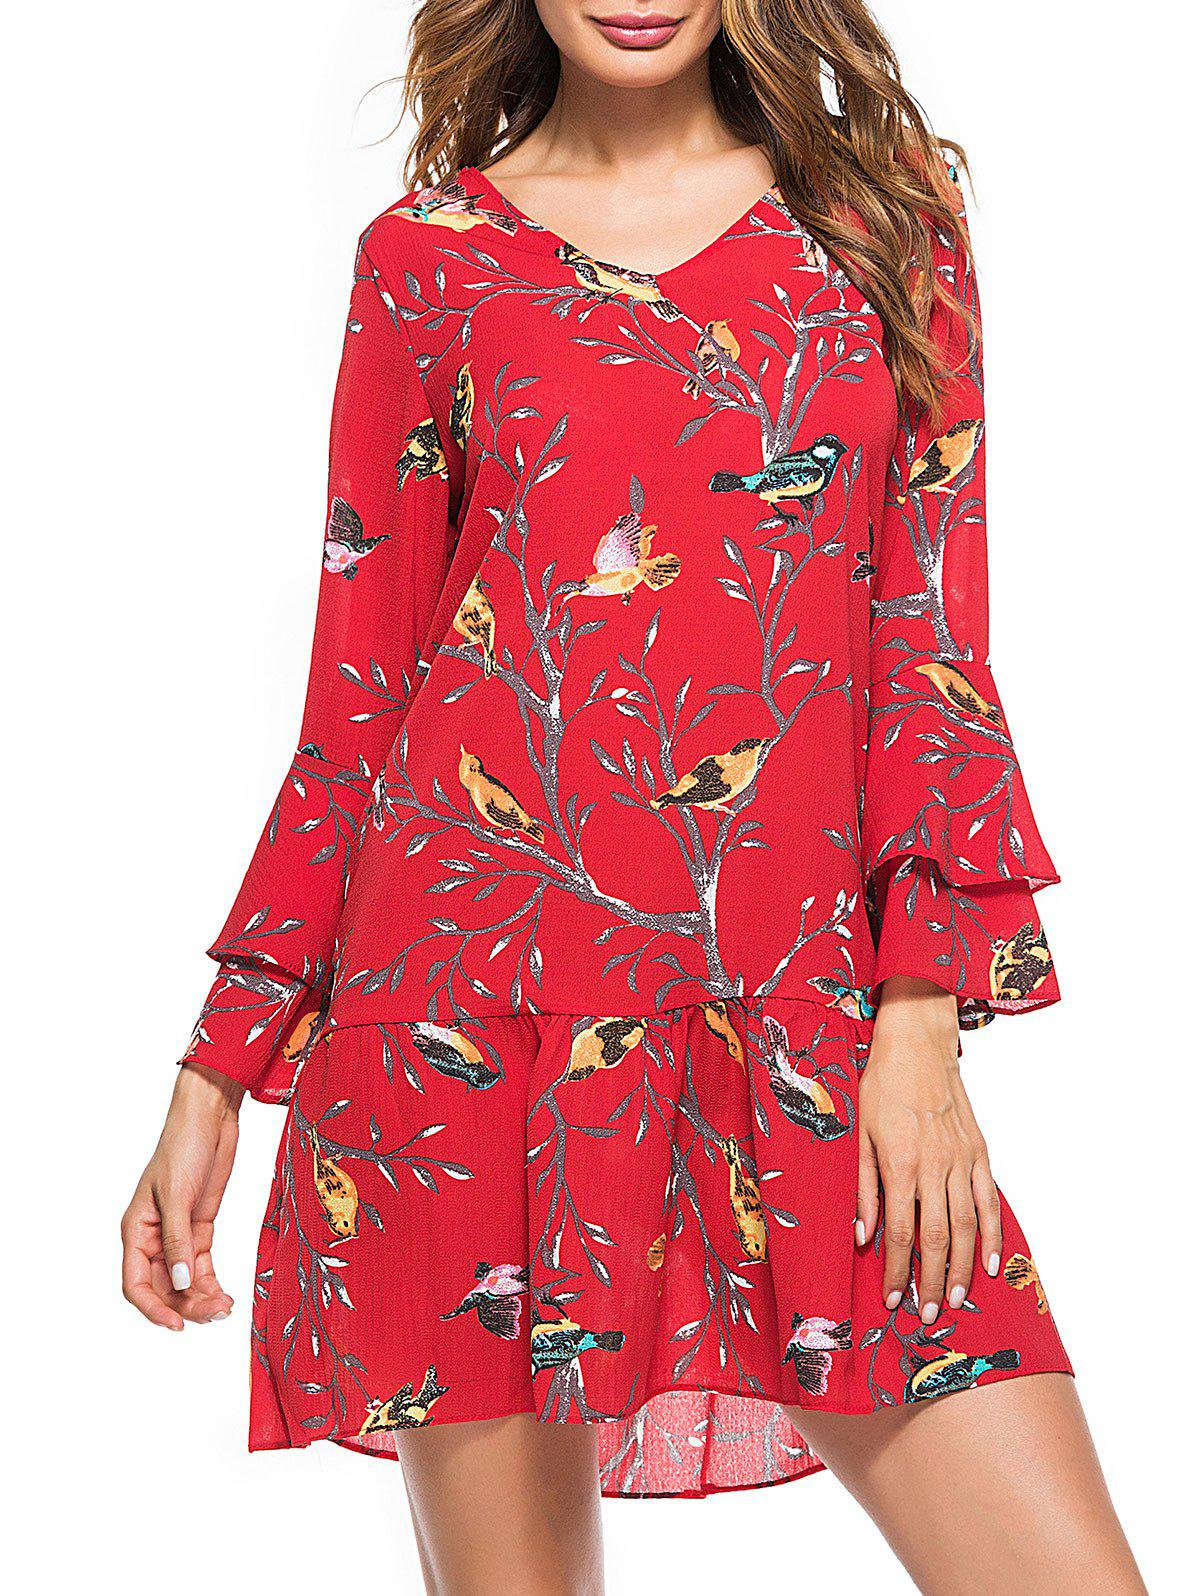 Bell Sleeve Bird Print Drop Waist A Line DressWOMEN<br><br>Size: M; Color: RED; Style: Casual; Material: Polyester; Silhouette: Trumpet/Mermaid; Dresses Length: Mini; Neckline: V-Neck; Sleeve Length: 3/4 Length Sleeves; Waist: Dropped; Pattern Type: Animal; With Belt: No; Season: Fall,Spring; Weight: 0.2100kg; Package Contents: 1 x Dress;